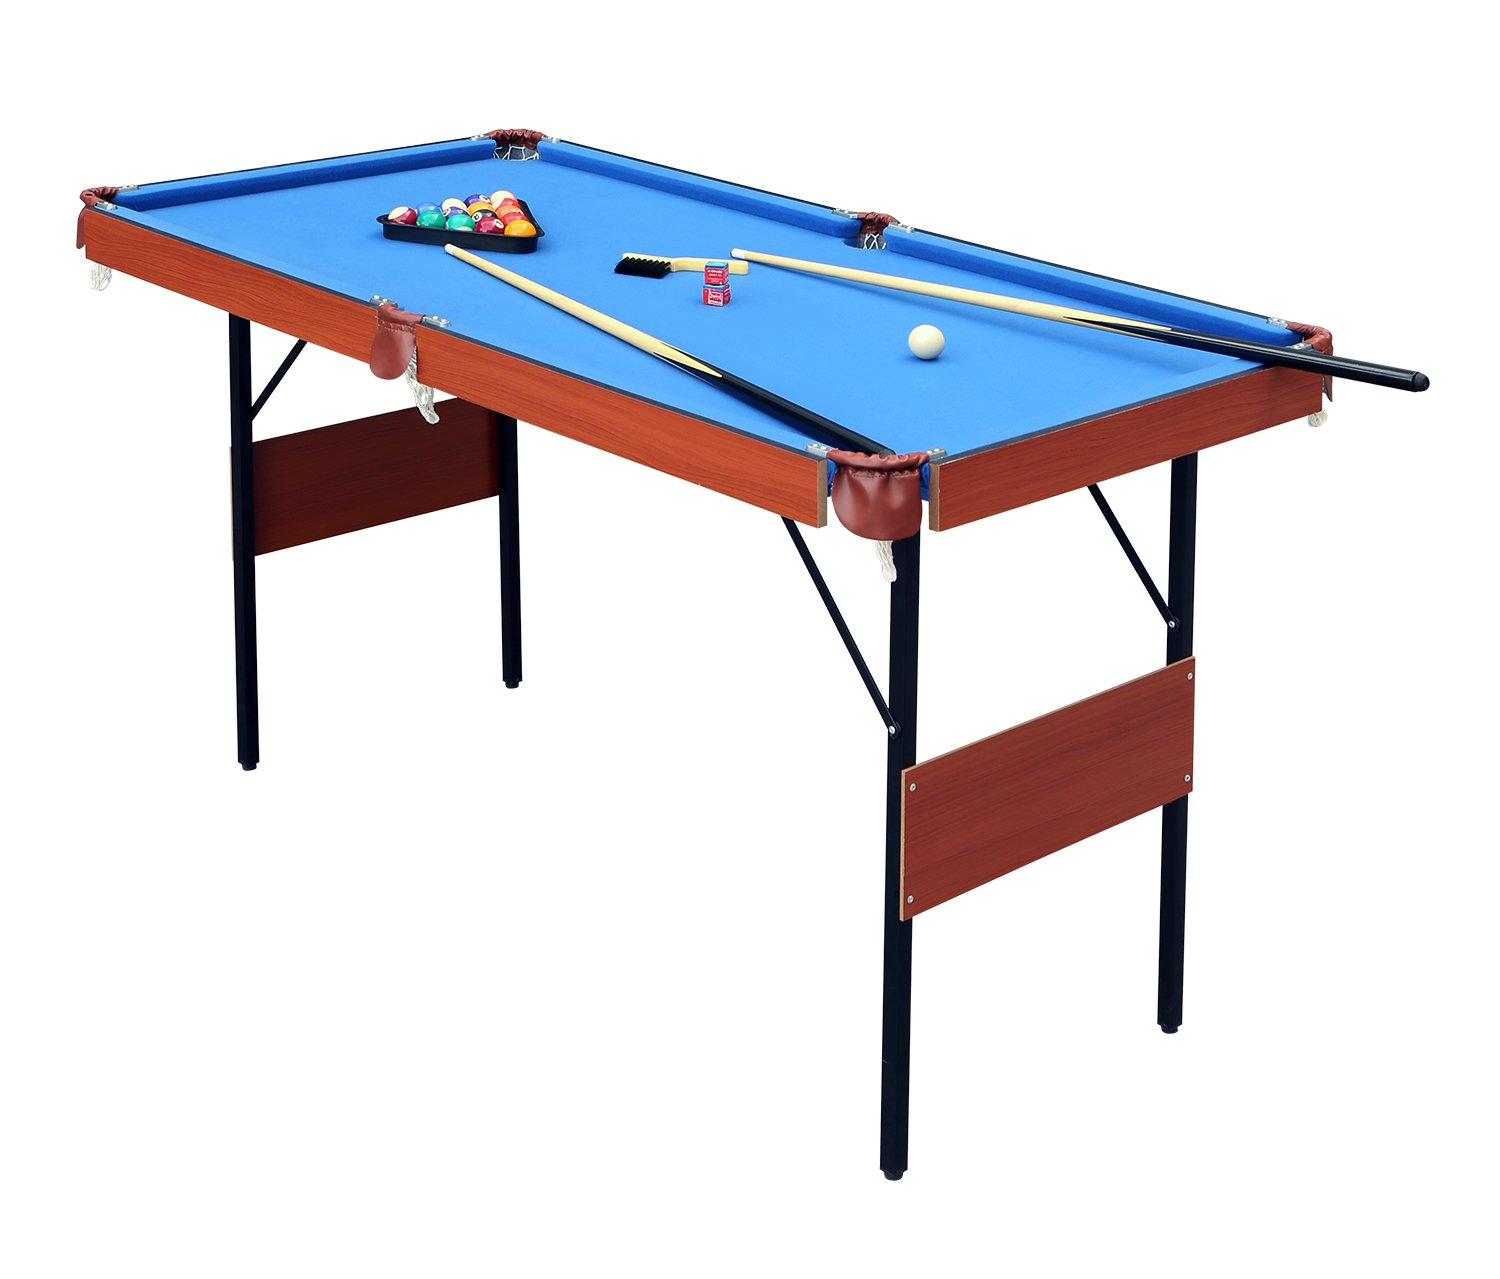 Hlc 55 folding space saver pool billiard table review - How much room do i need for a pool table ...